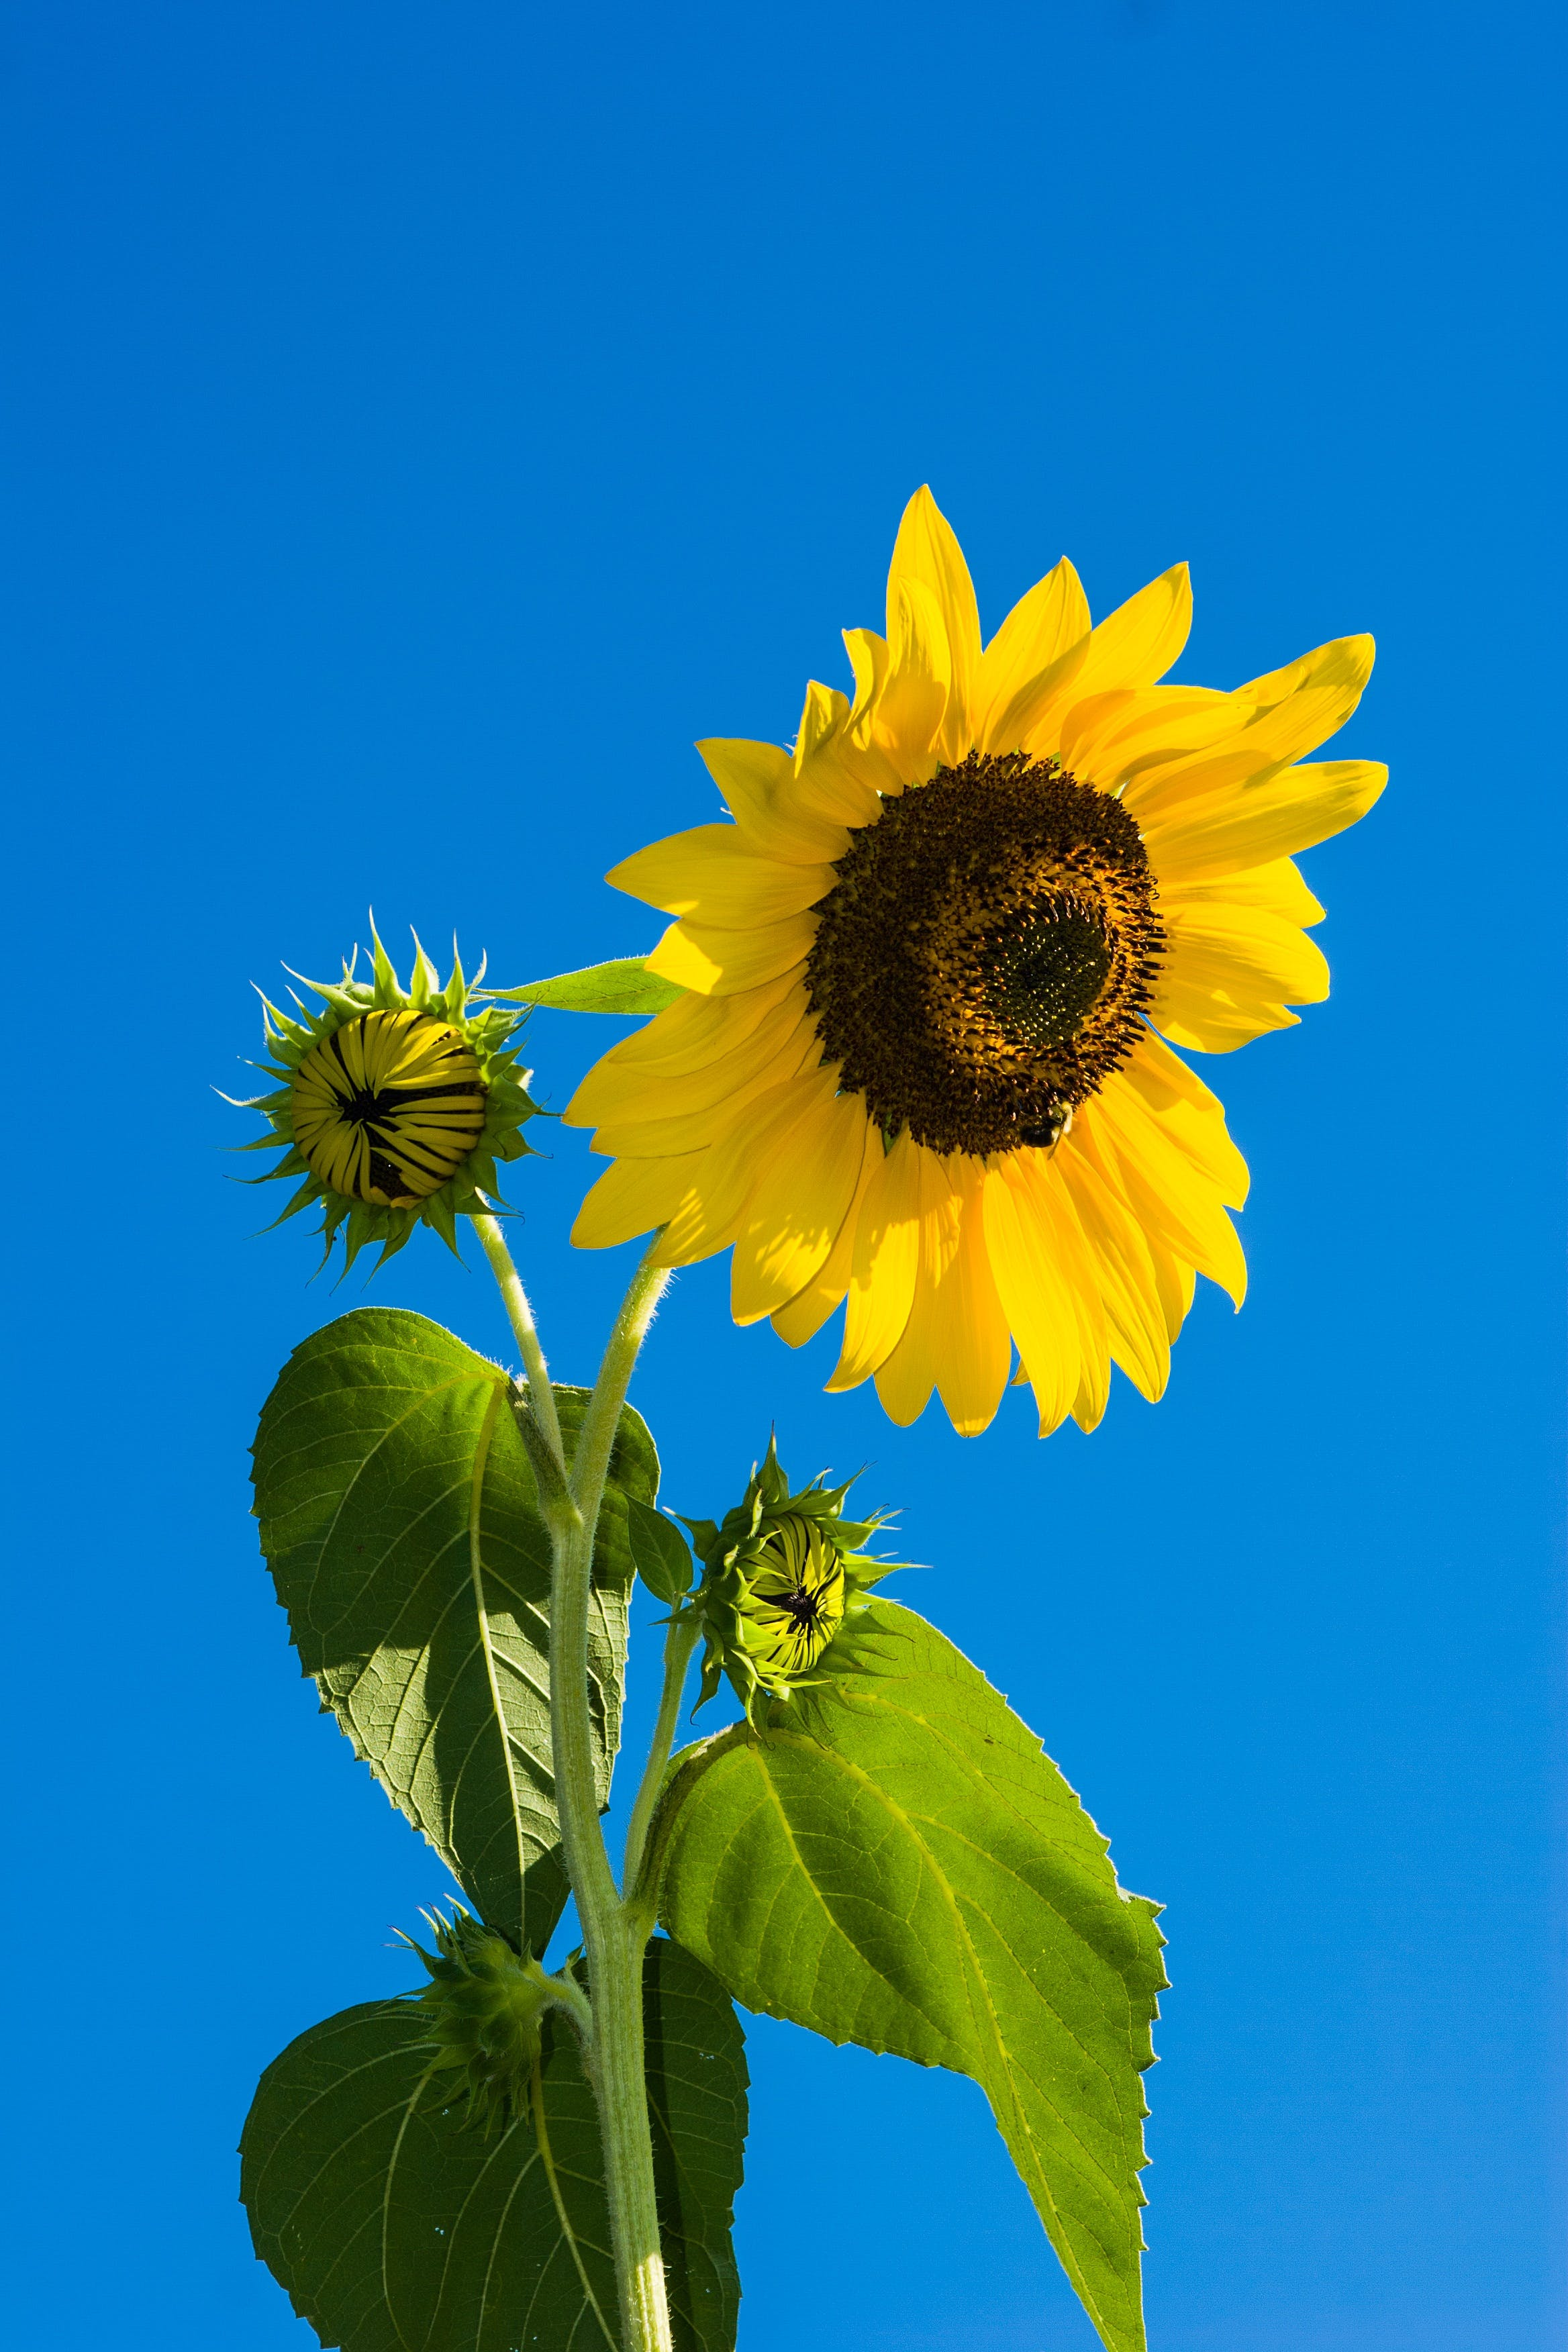 Sunflower Under Blue Sky during Daytime